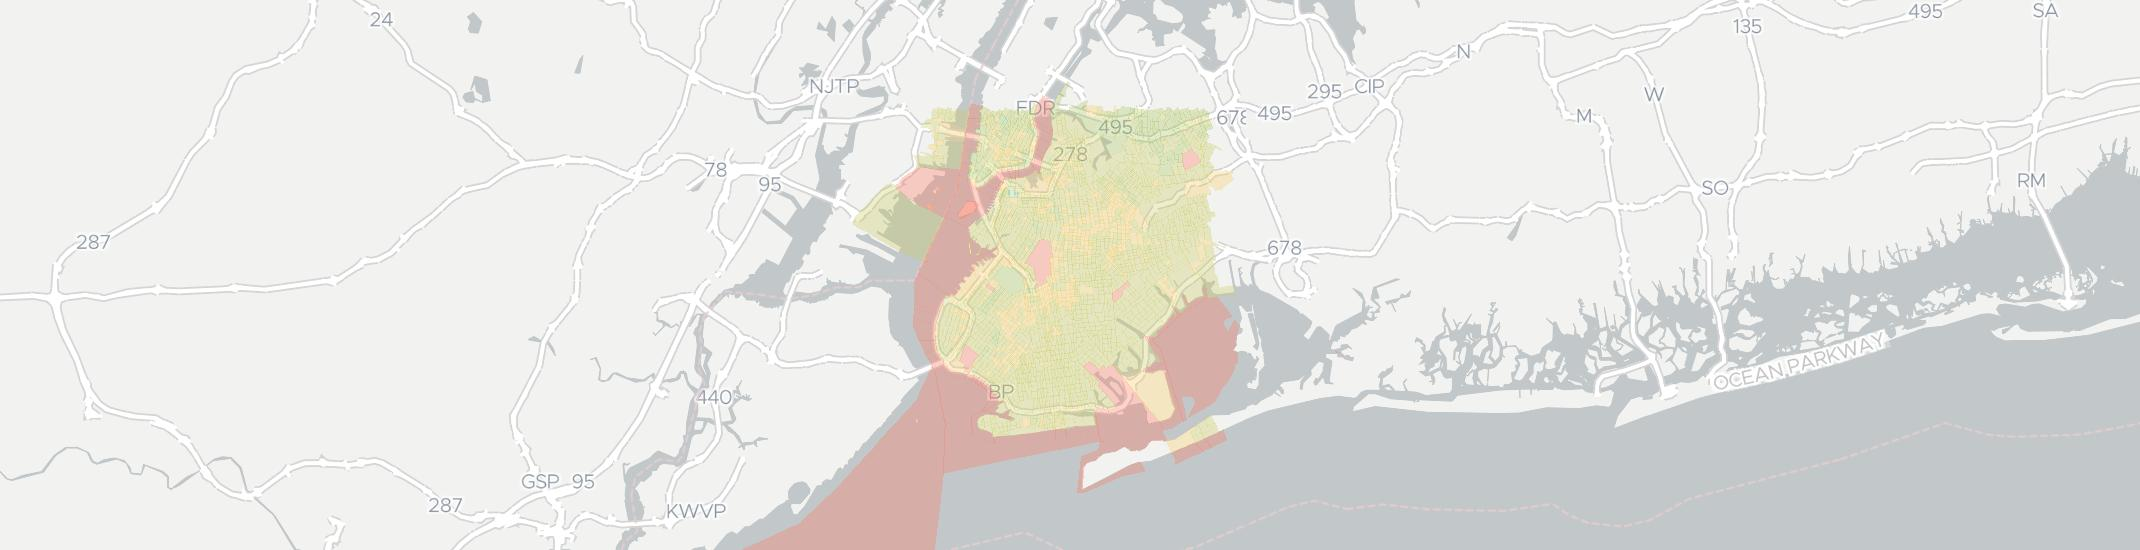 Brooklyn Zip Code Map 2017.Internet Providers In Brooklyn Compare 36 Internet Providers